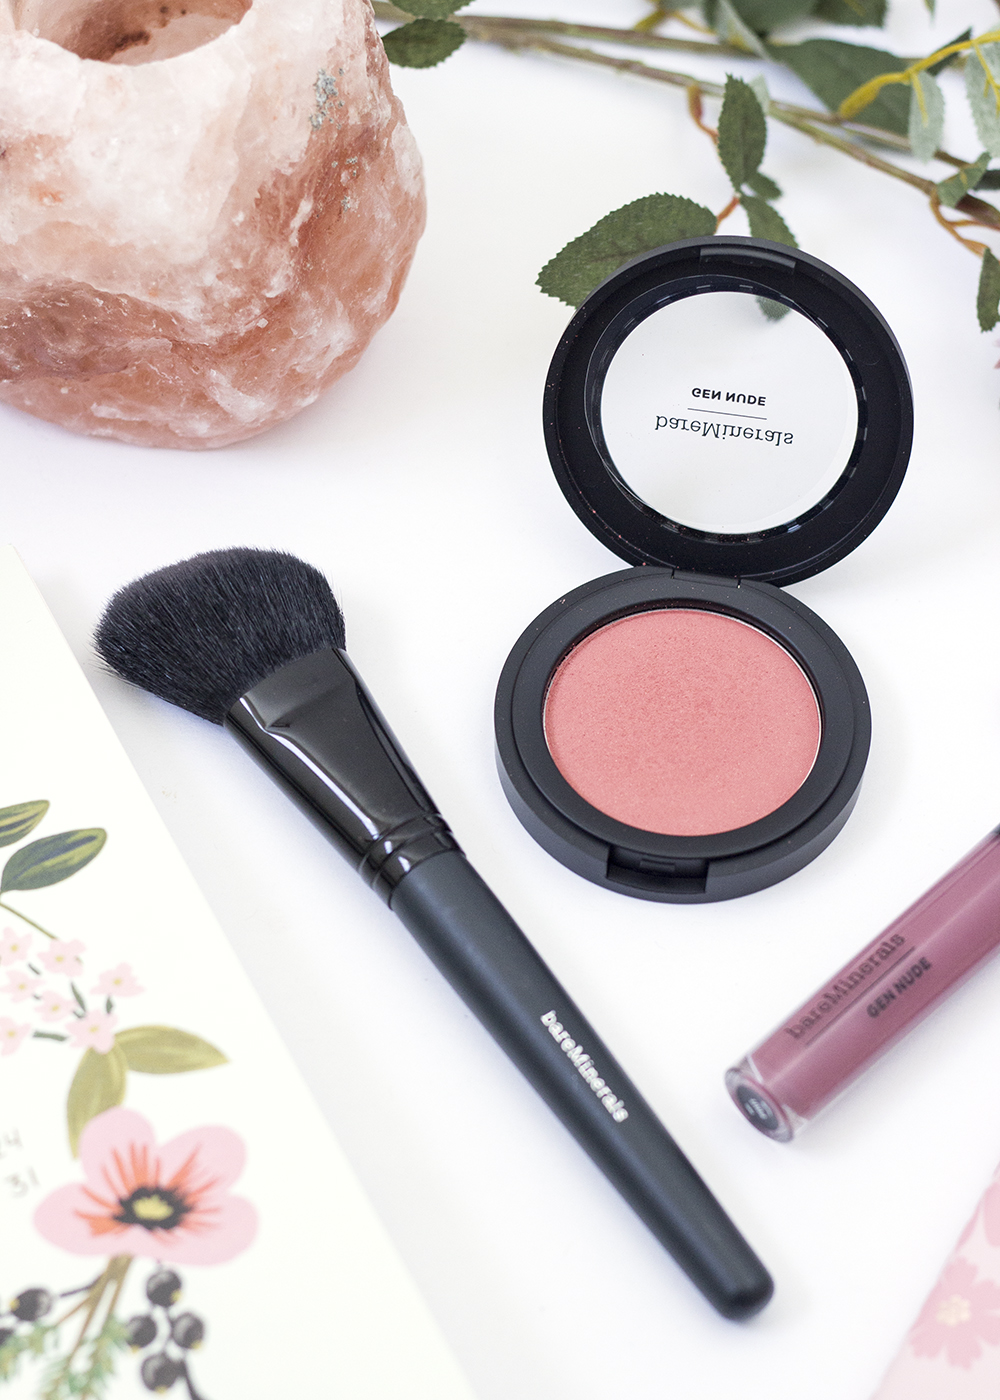 BareMinerals Gen Nude Powder Blush in Peachy Keen